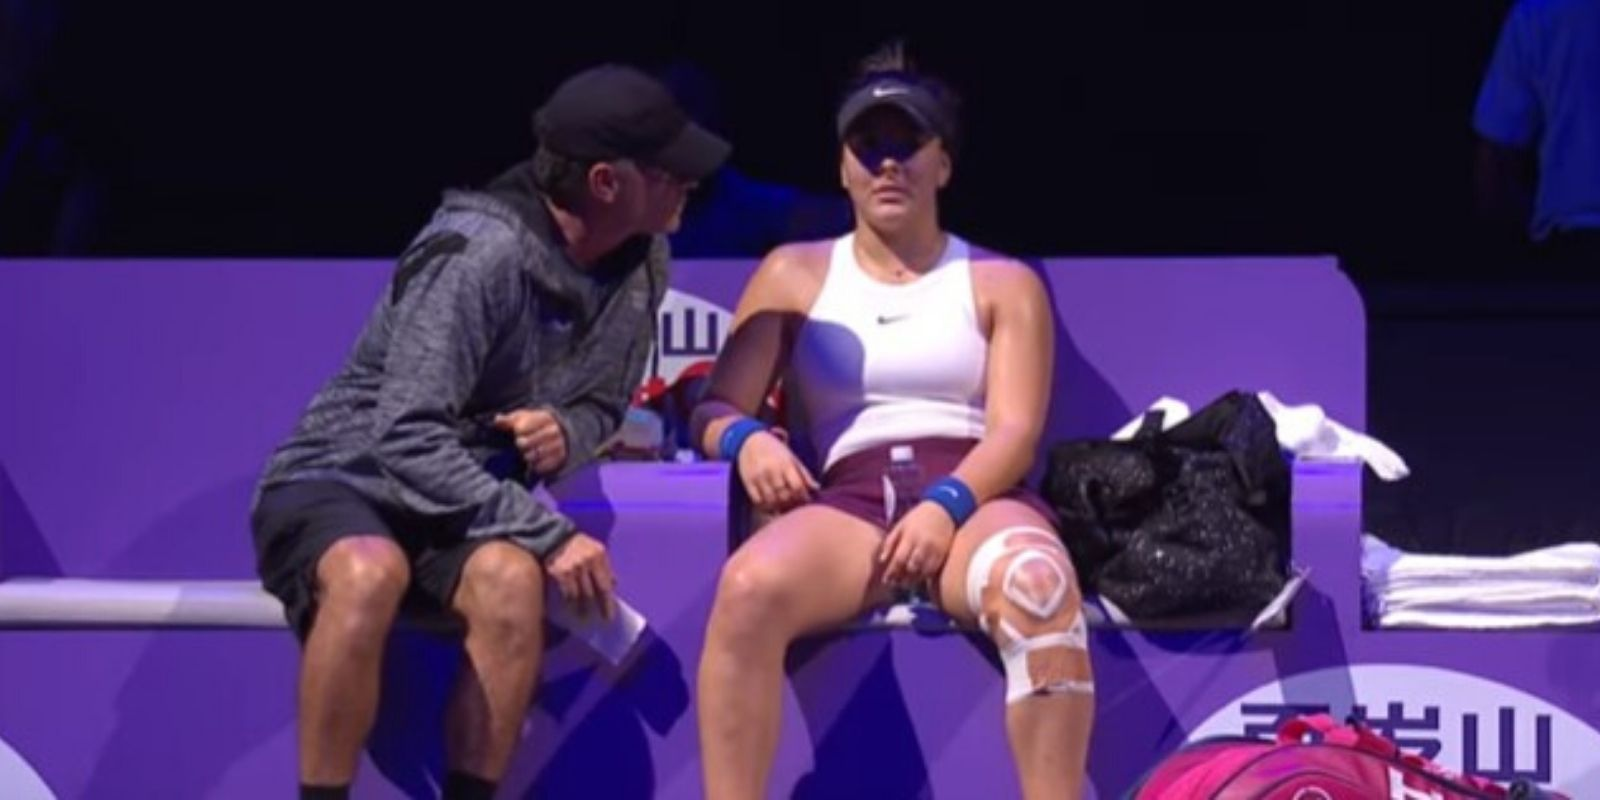 'I heard my knee crack'—Bianca Andreescu eliminated from WTA due to knee injury